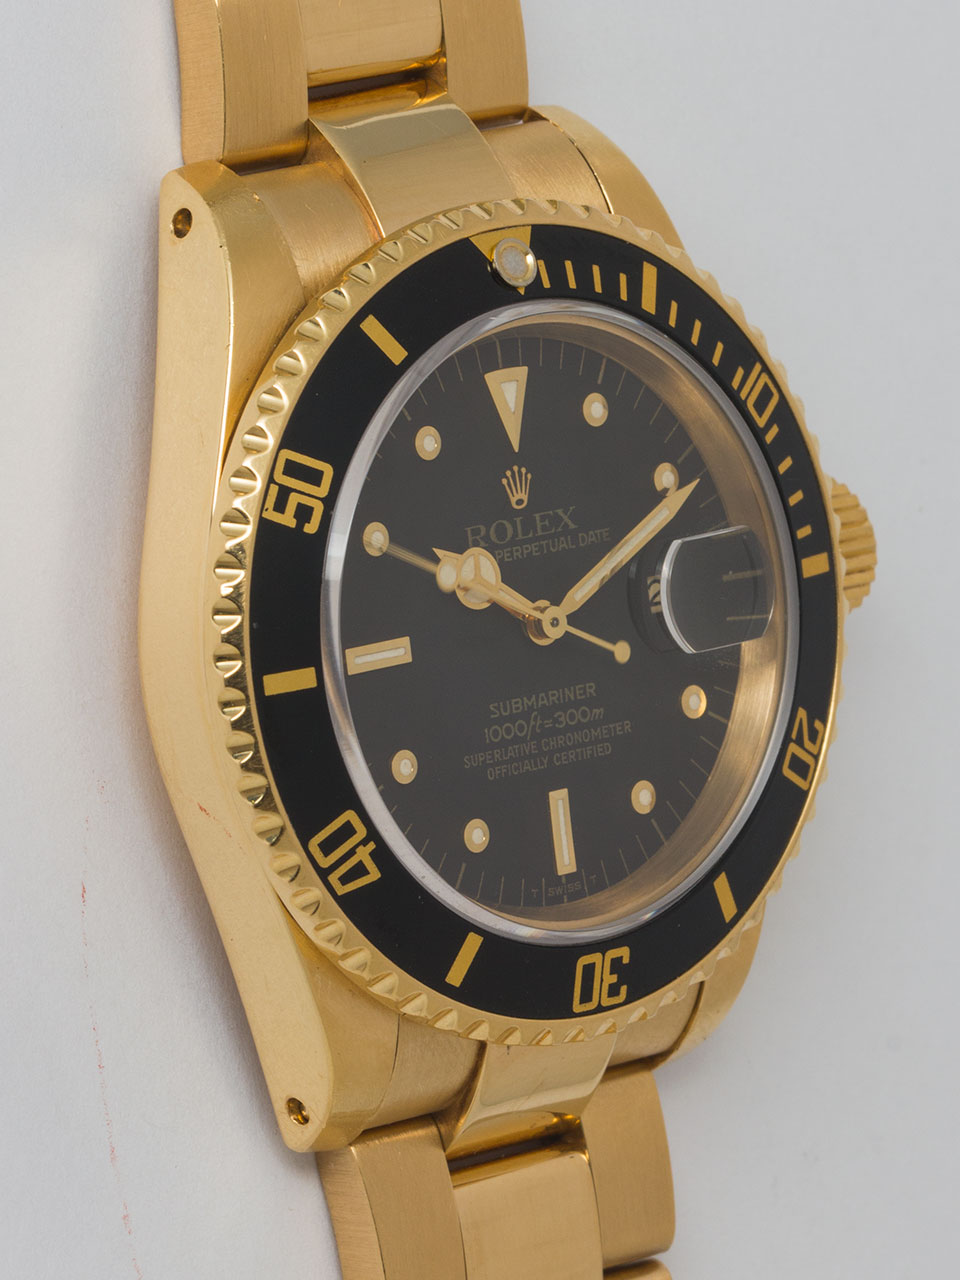 Rolex Submariner ref 16808 18K YG Transitional model circa 1983